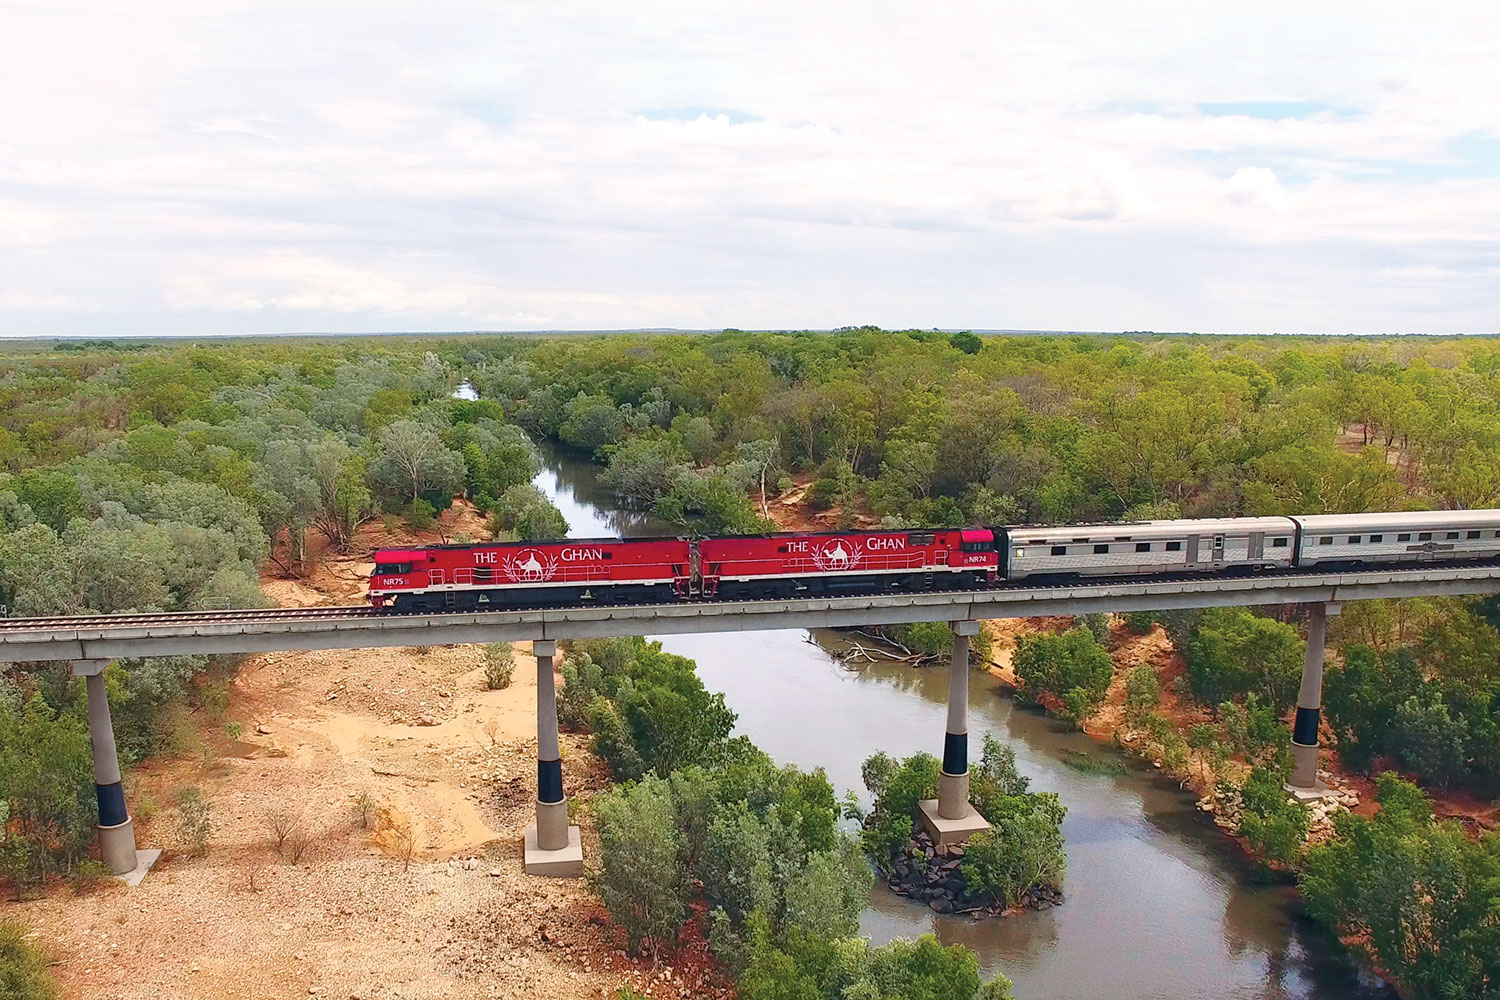 The Ghan over the Katherine River, NT